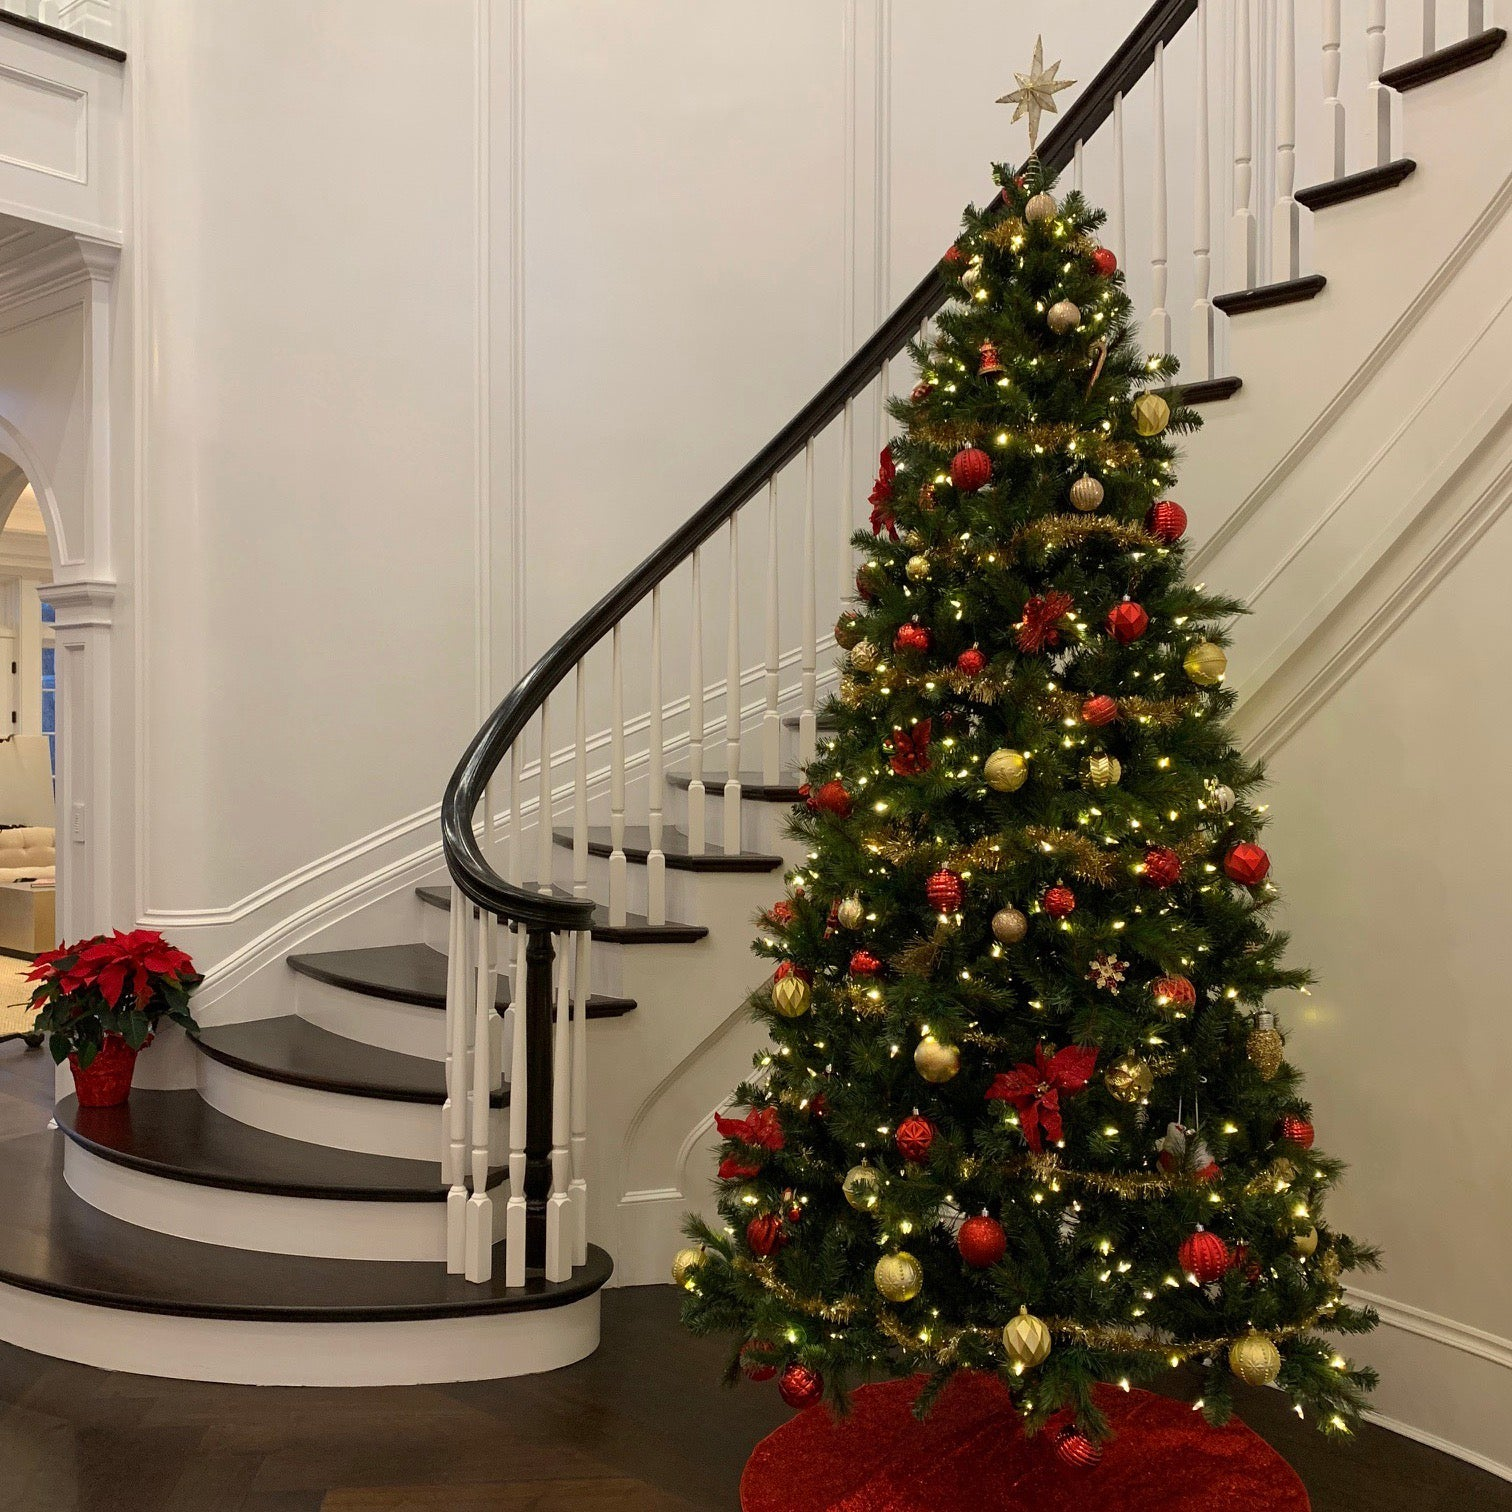 Decorated artificial Christmas tree by residential staircase